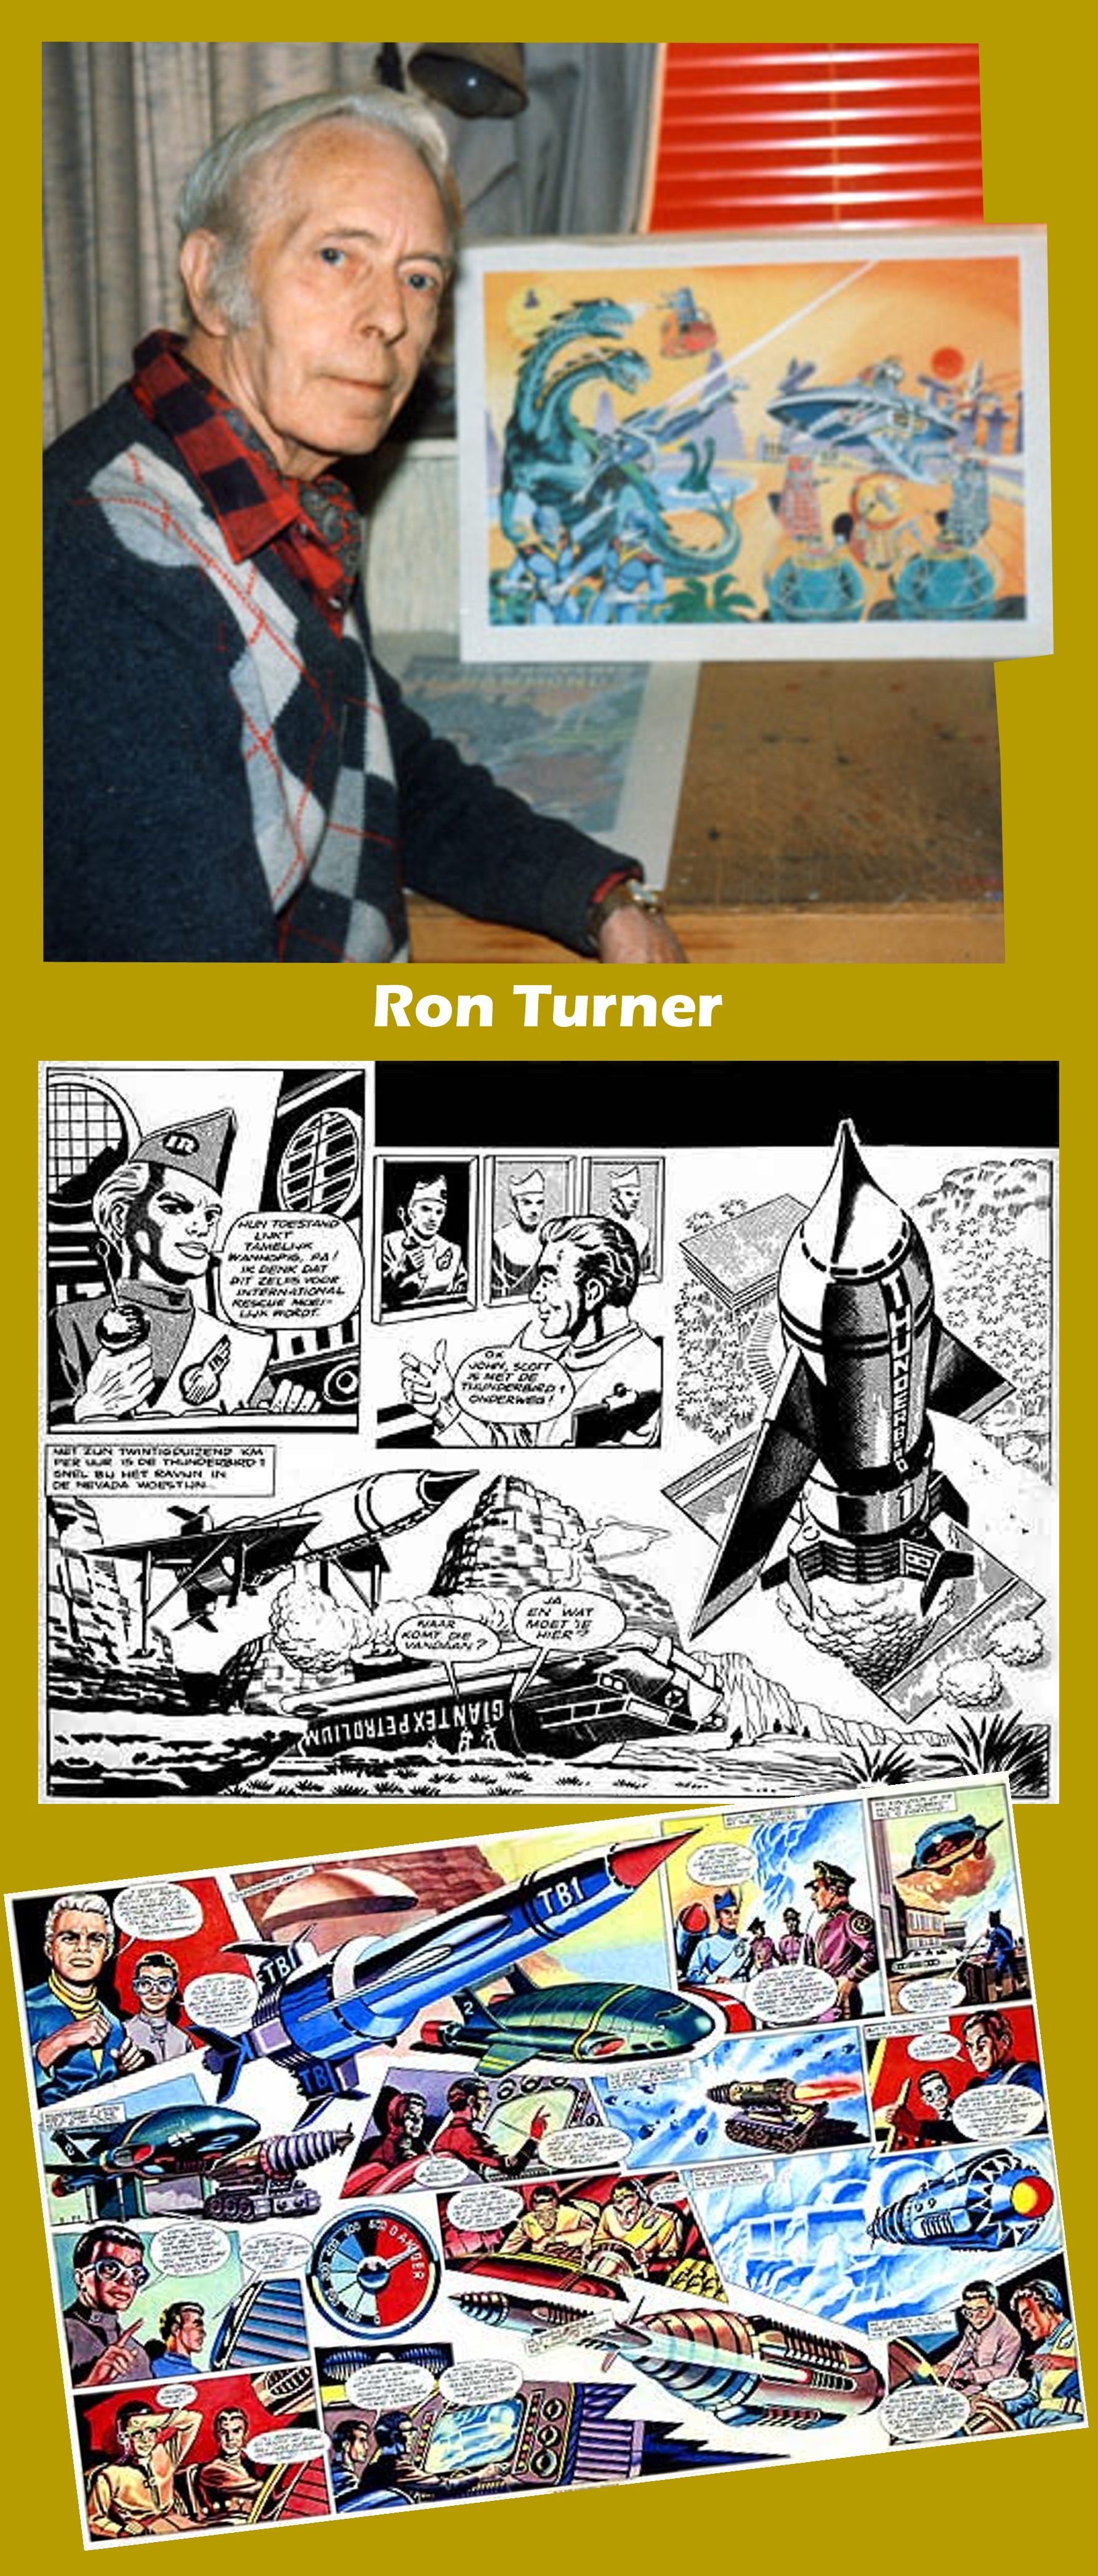 Ron Turner and some of his art. Graphic: Roger Perry